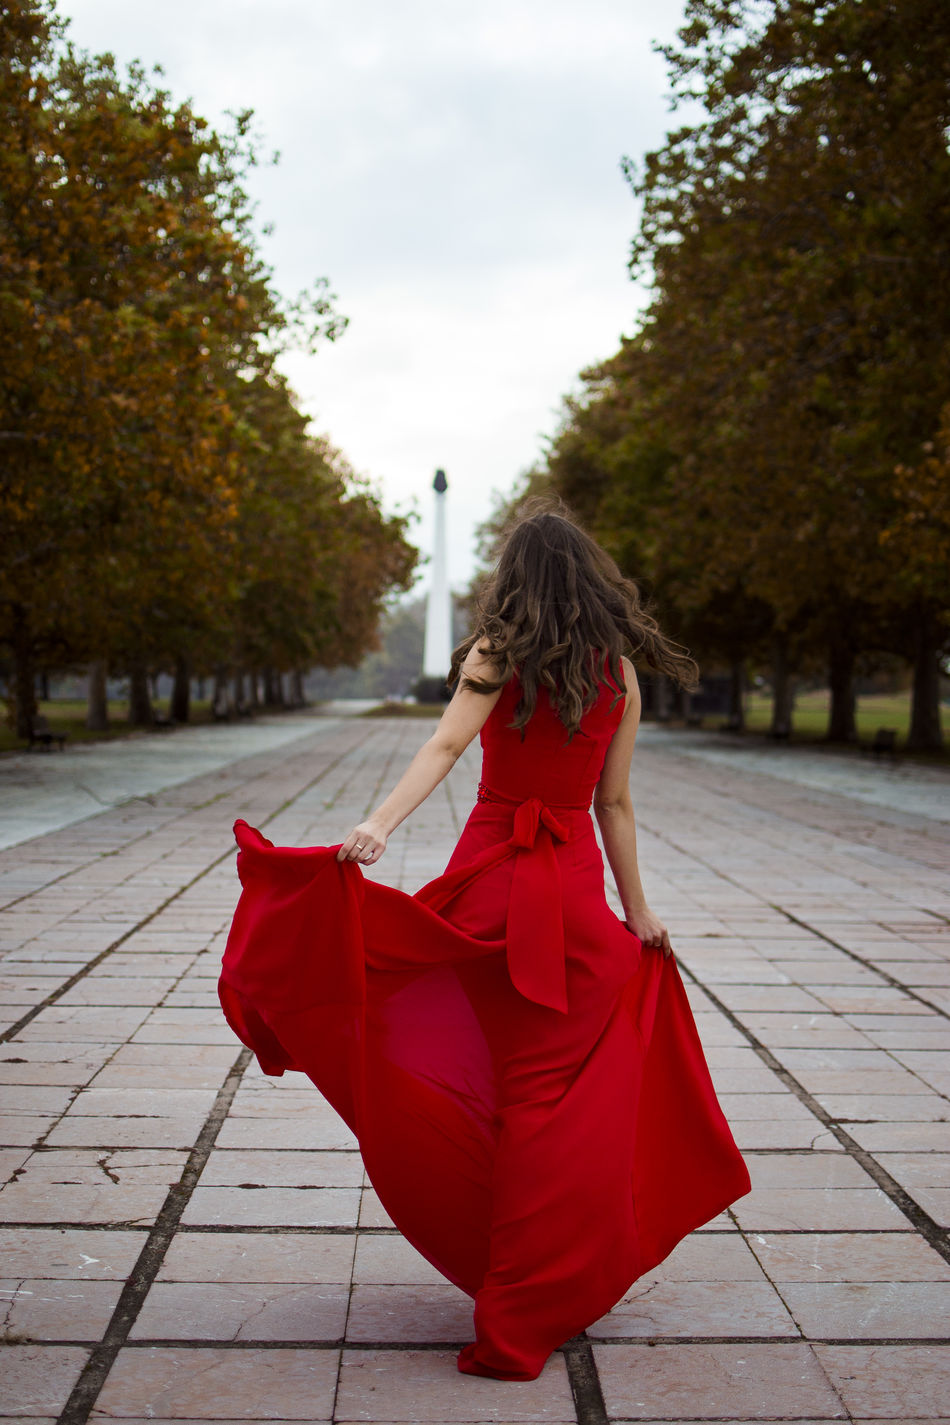 Girl in red dress Amazing Beautiful Beauty Best  Dress Fashion Girl Glamour Glamour Shots Model Outdoors People Red Red Dress Sky Street Travel Woman Woman Portrait Young Adult